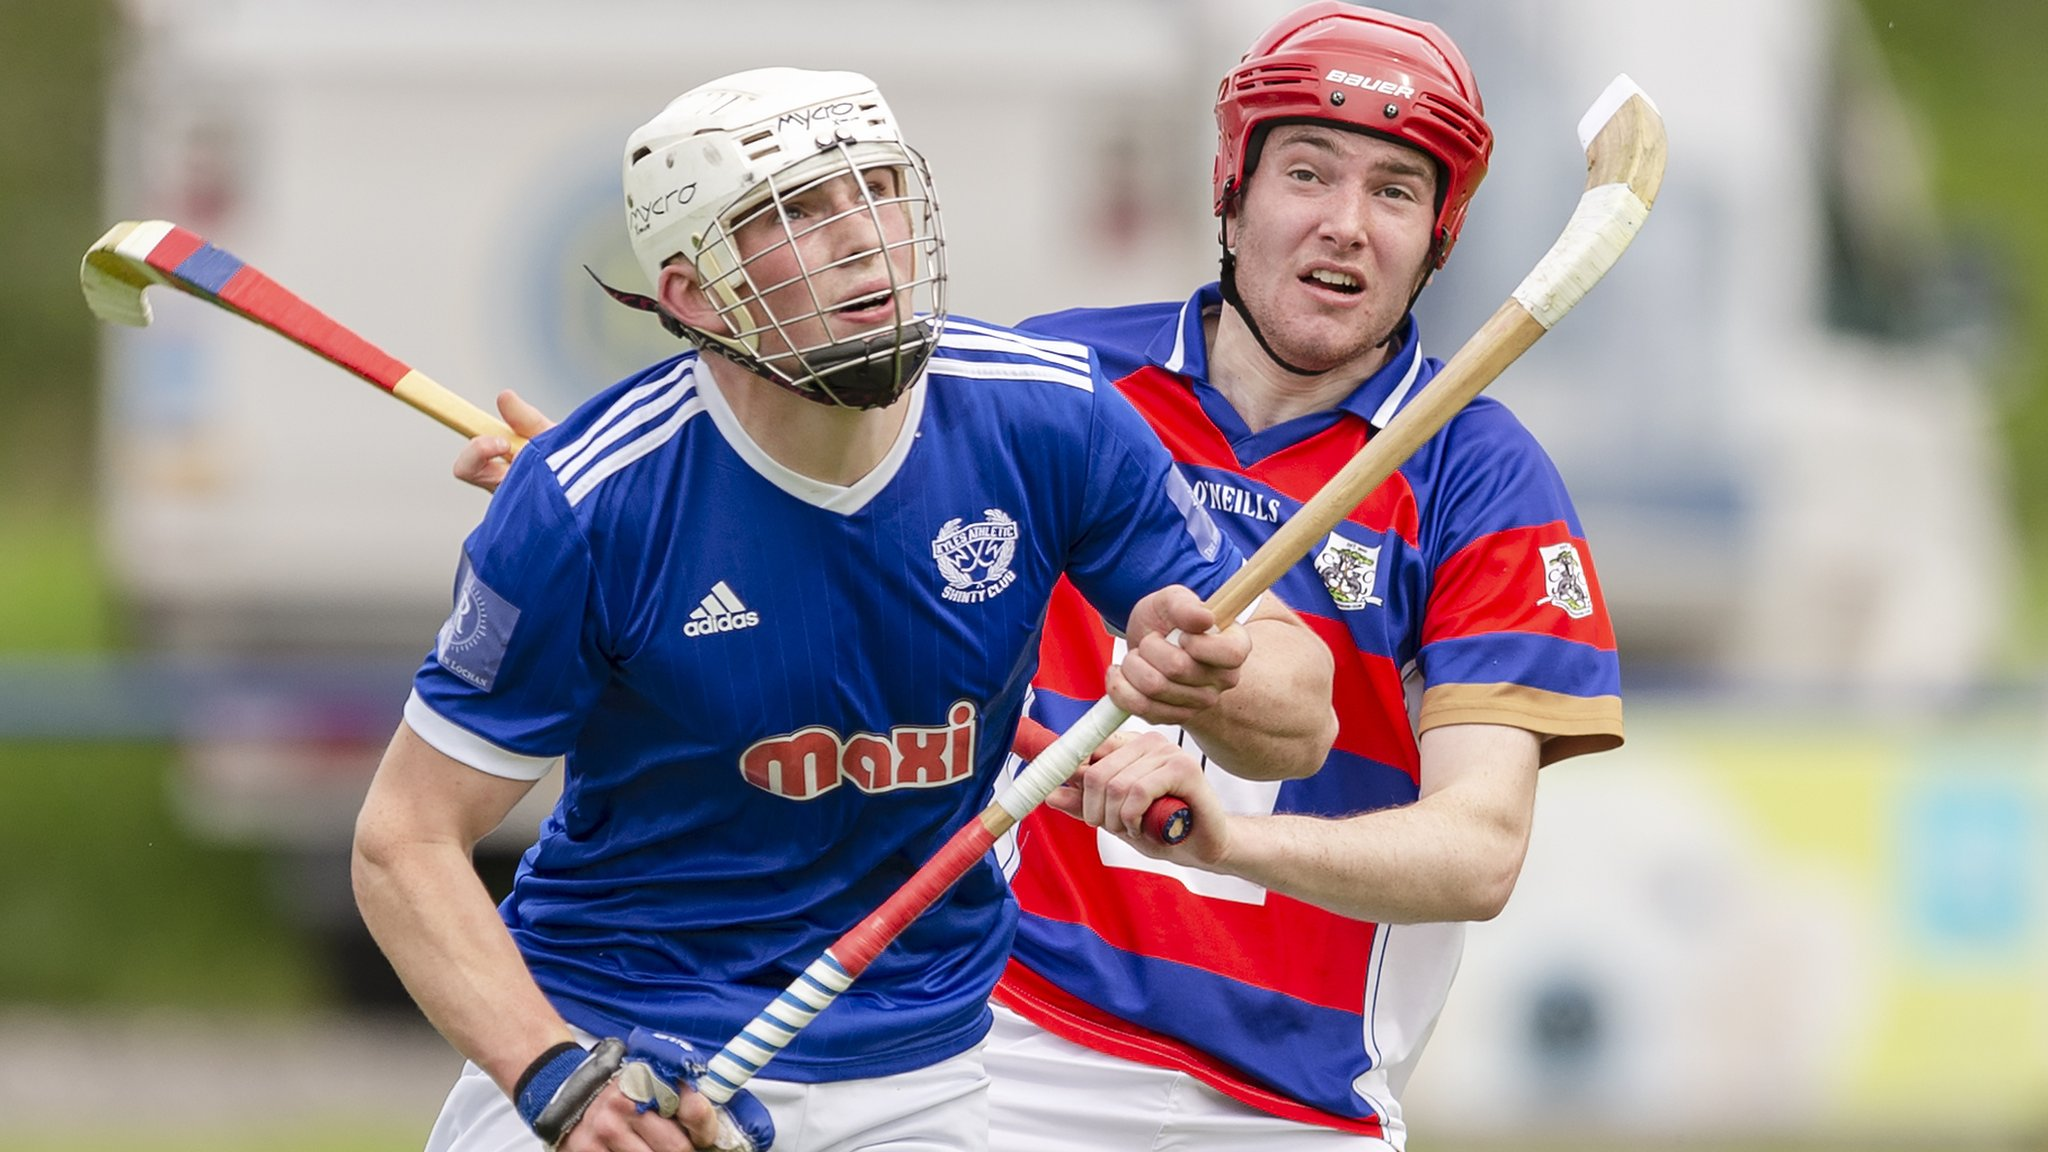 Shinty: Kingussie & Newtonmore stay first and second after narrow wins